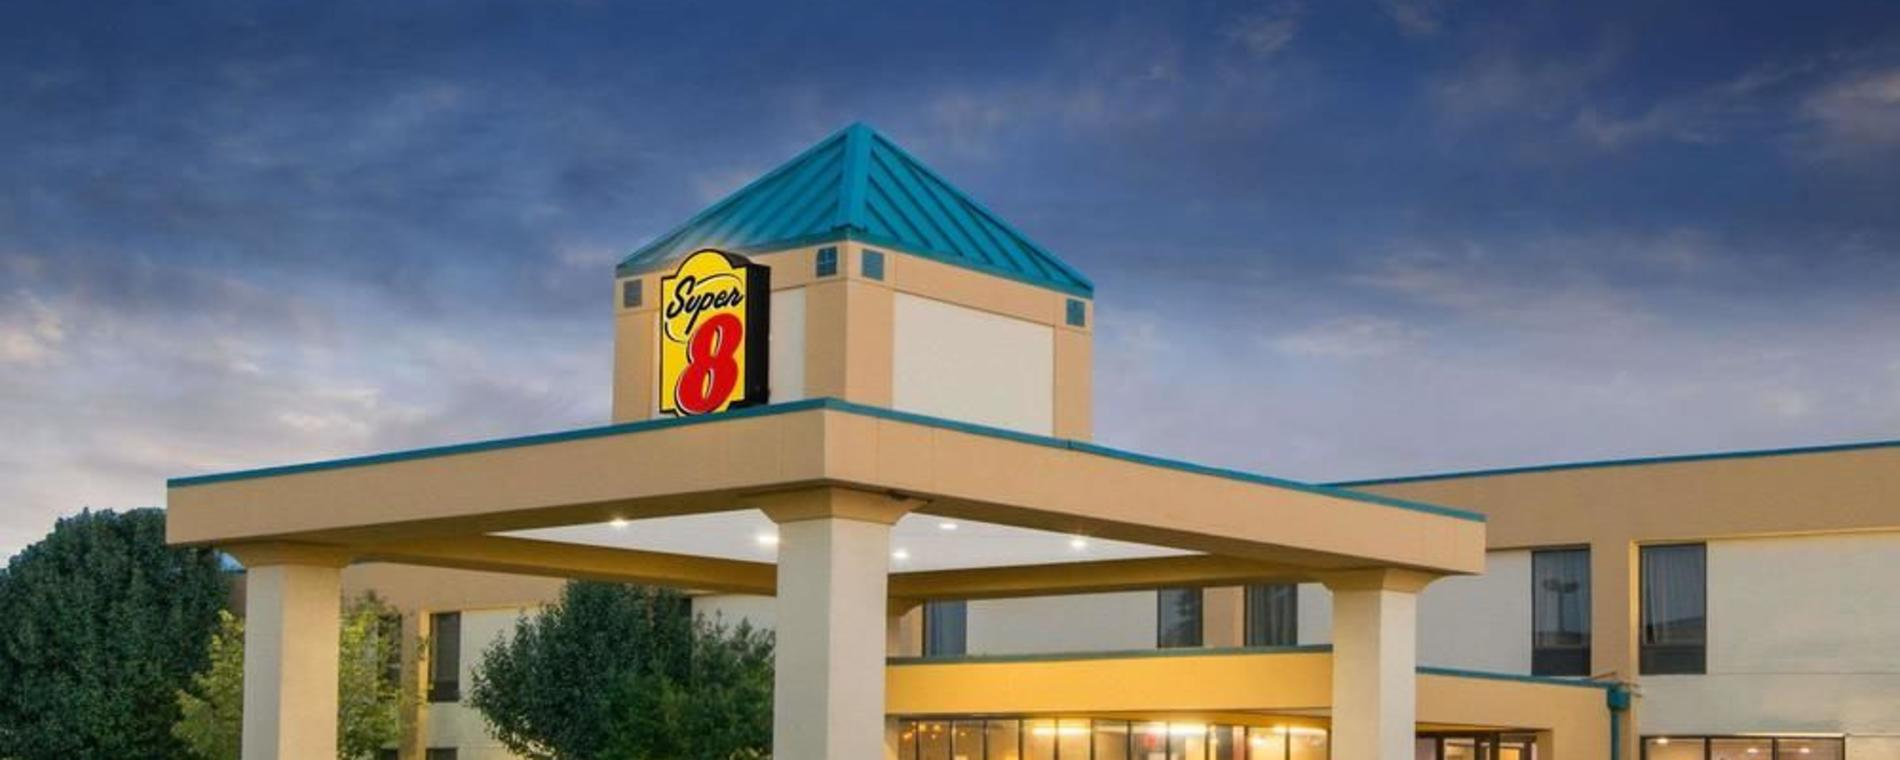 Super 8 South exterior Visit Wichita